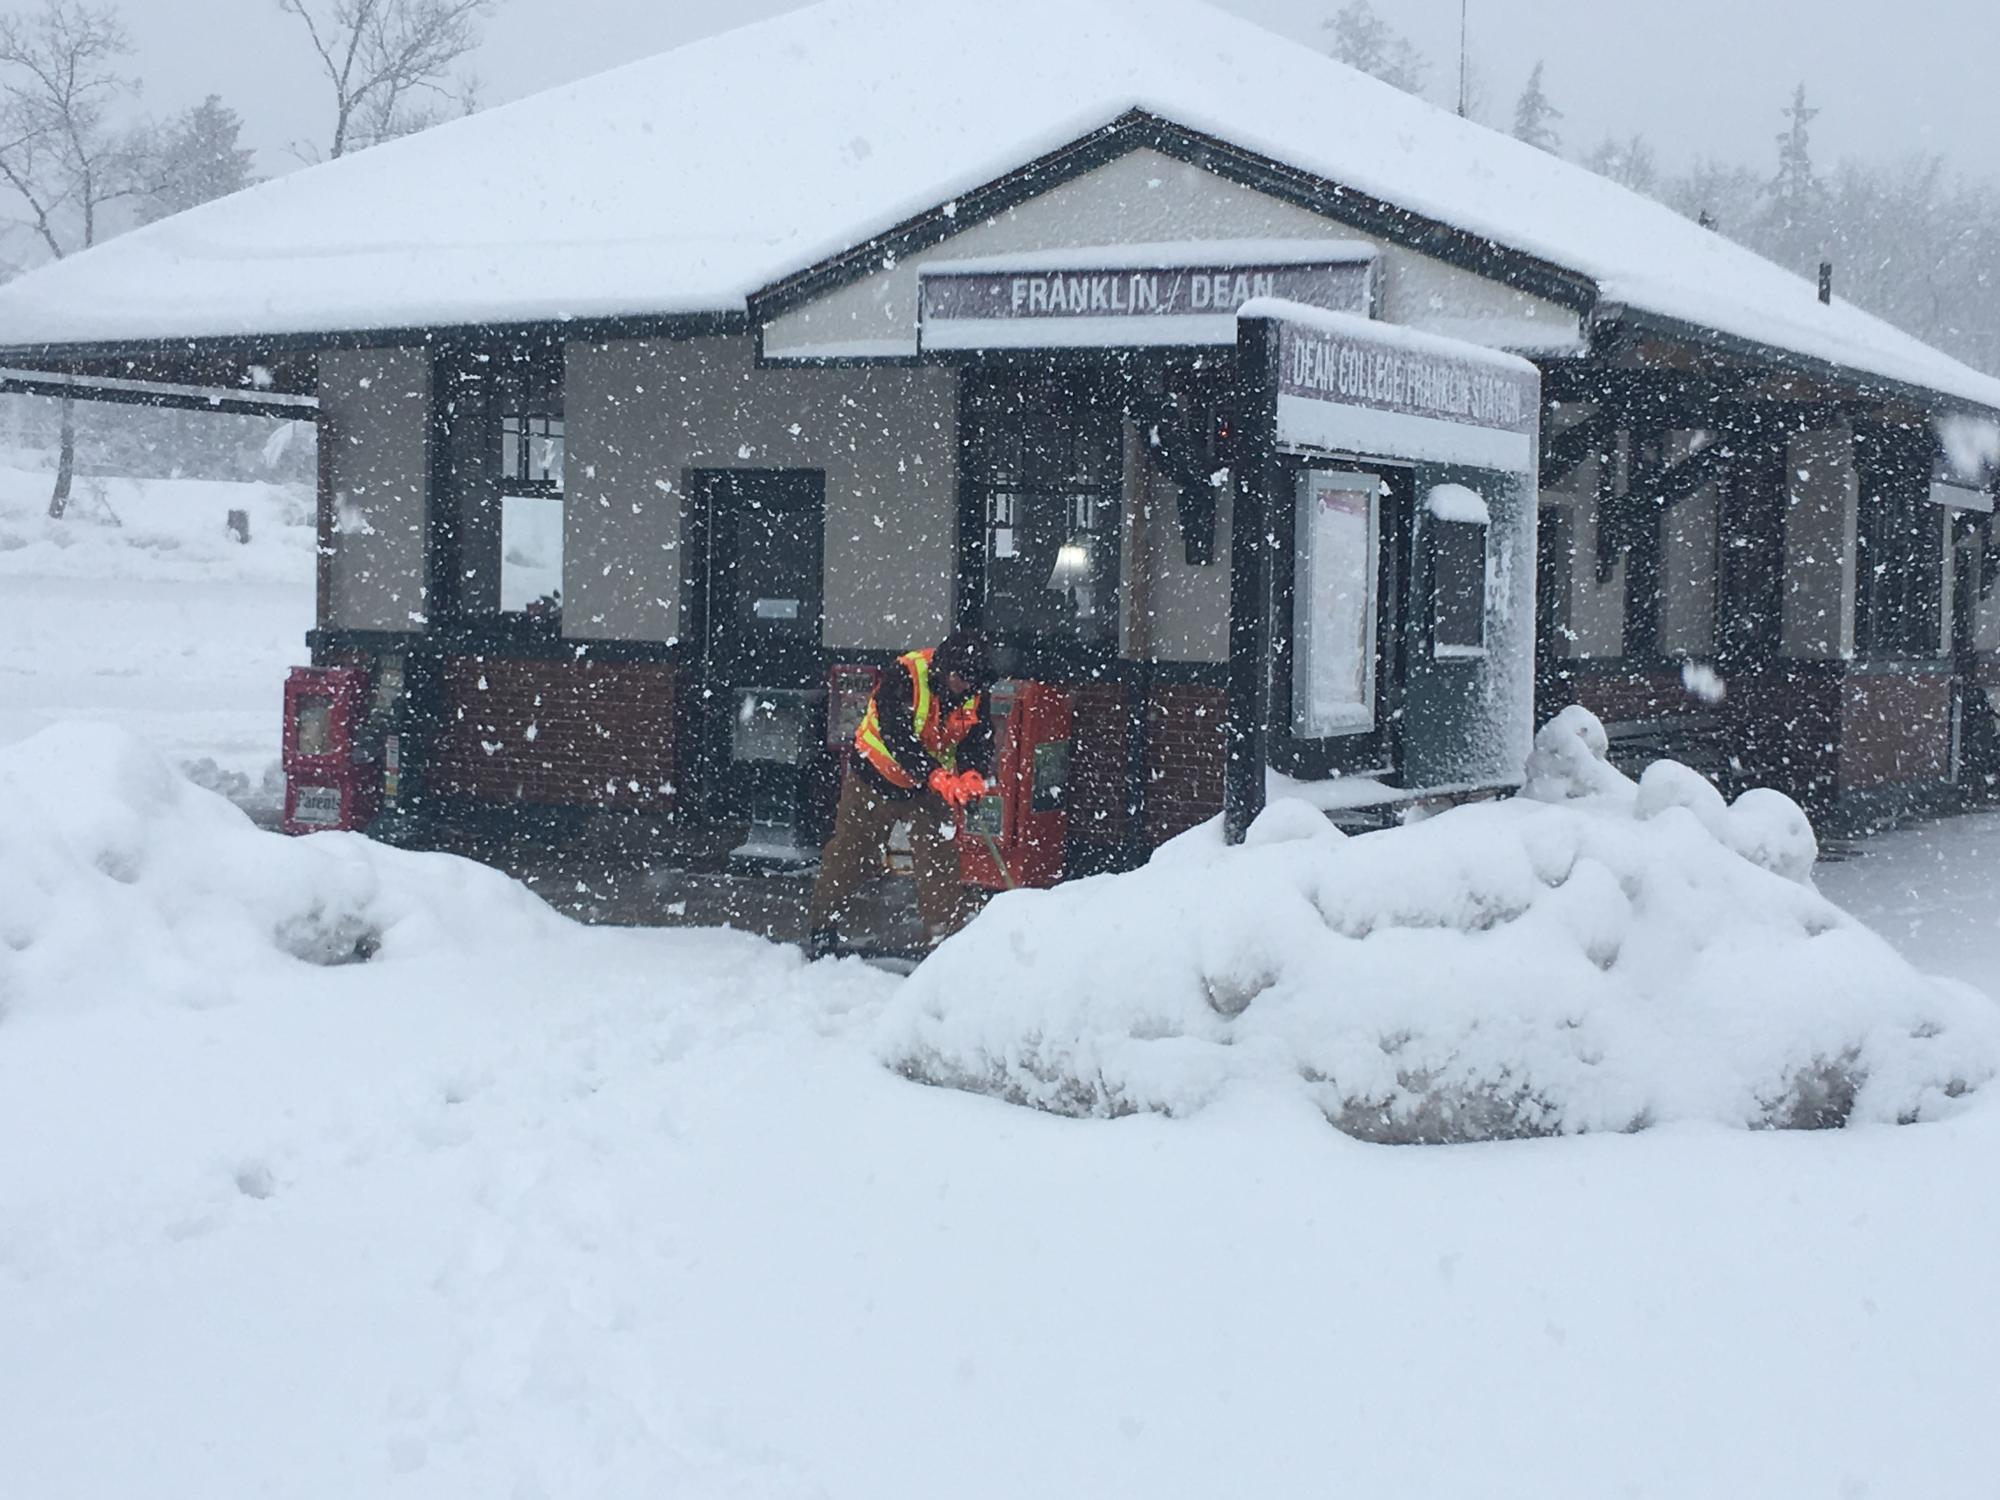 A crewman in an orange vest shovels snow outside the Franklin Commuter Rail stop